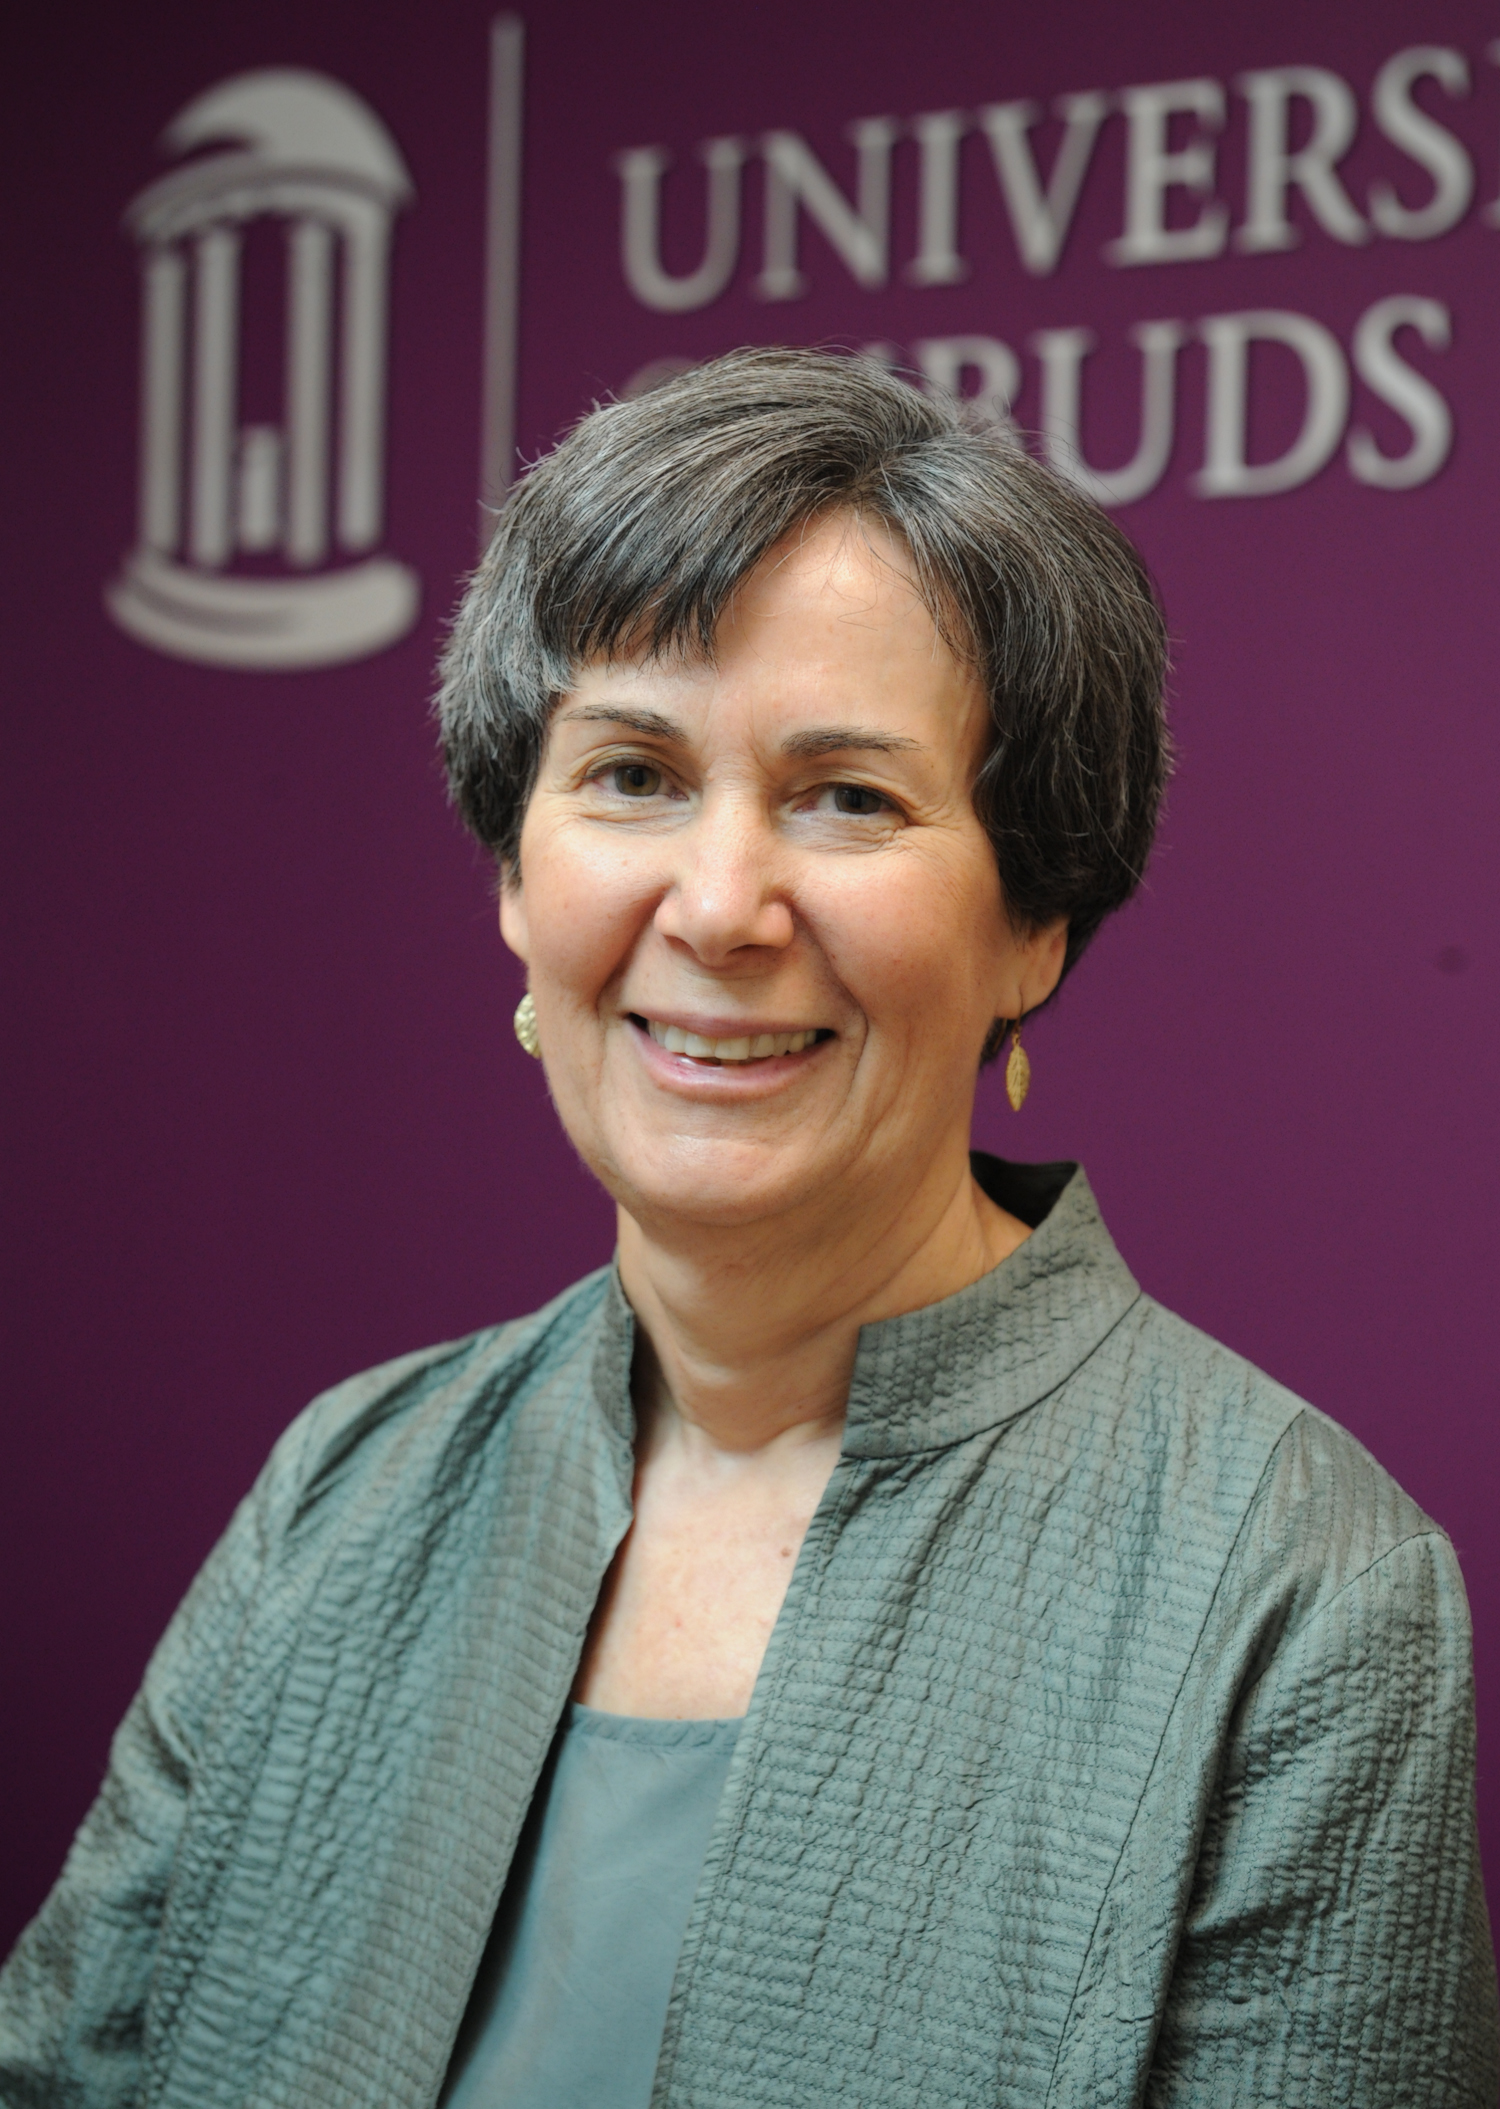 A headshot of former School faculty member Laurie Mesibov, courtesy University Communications